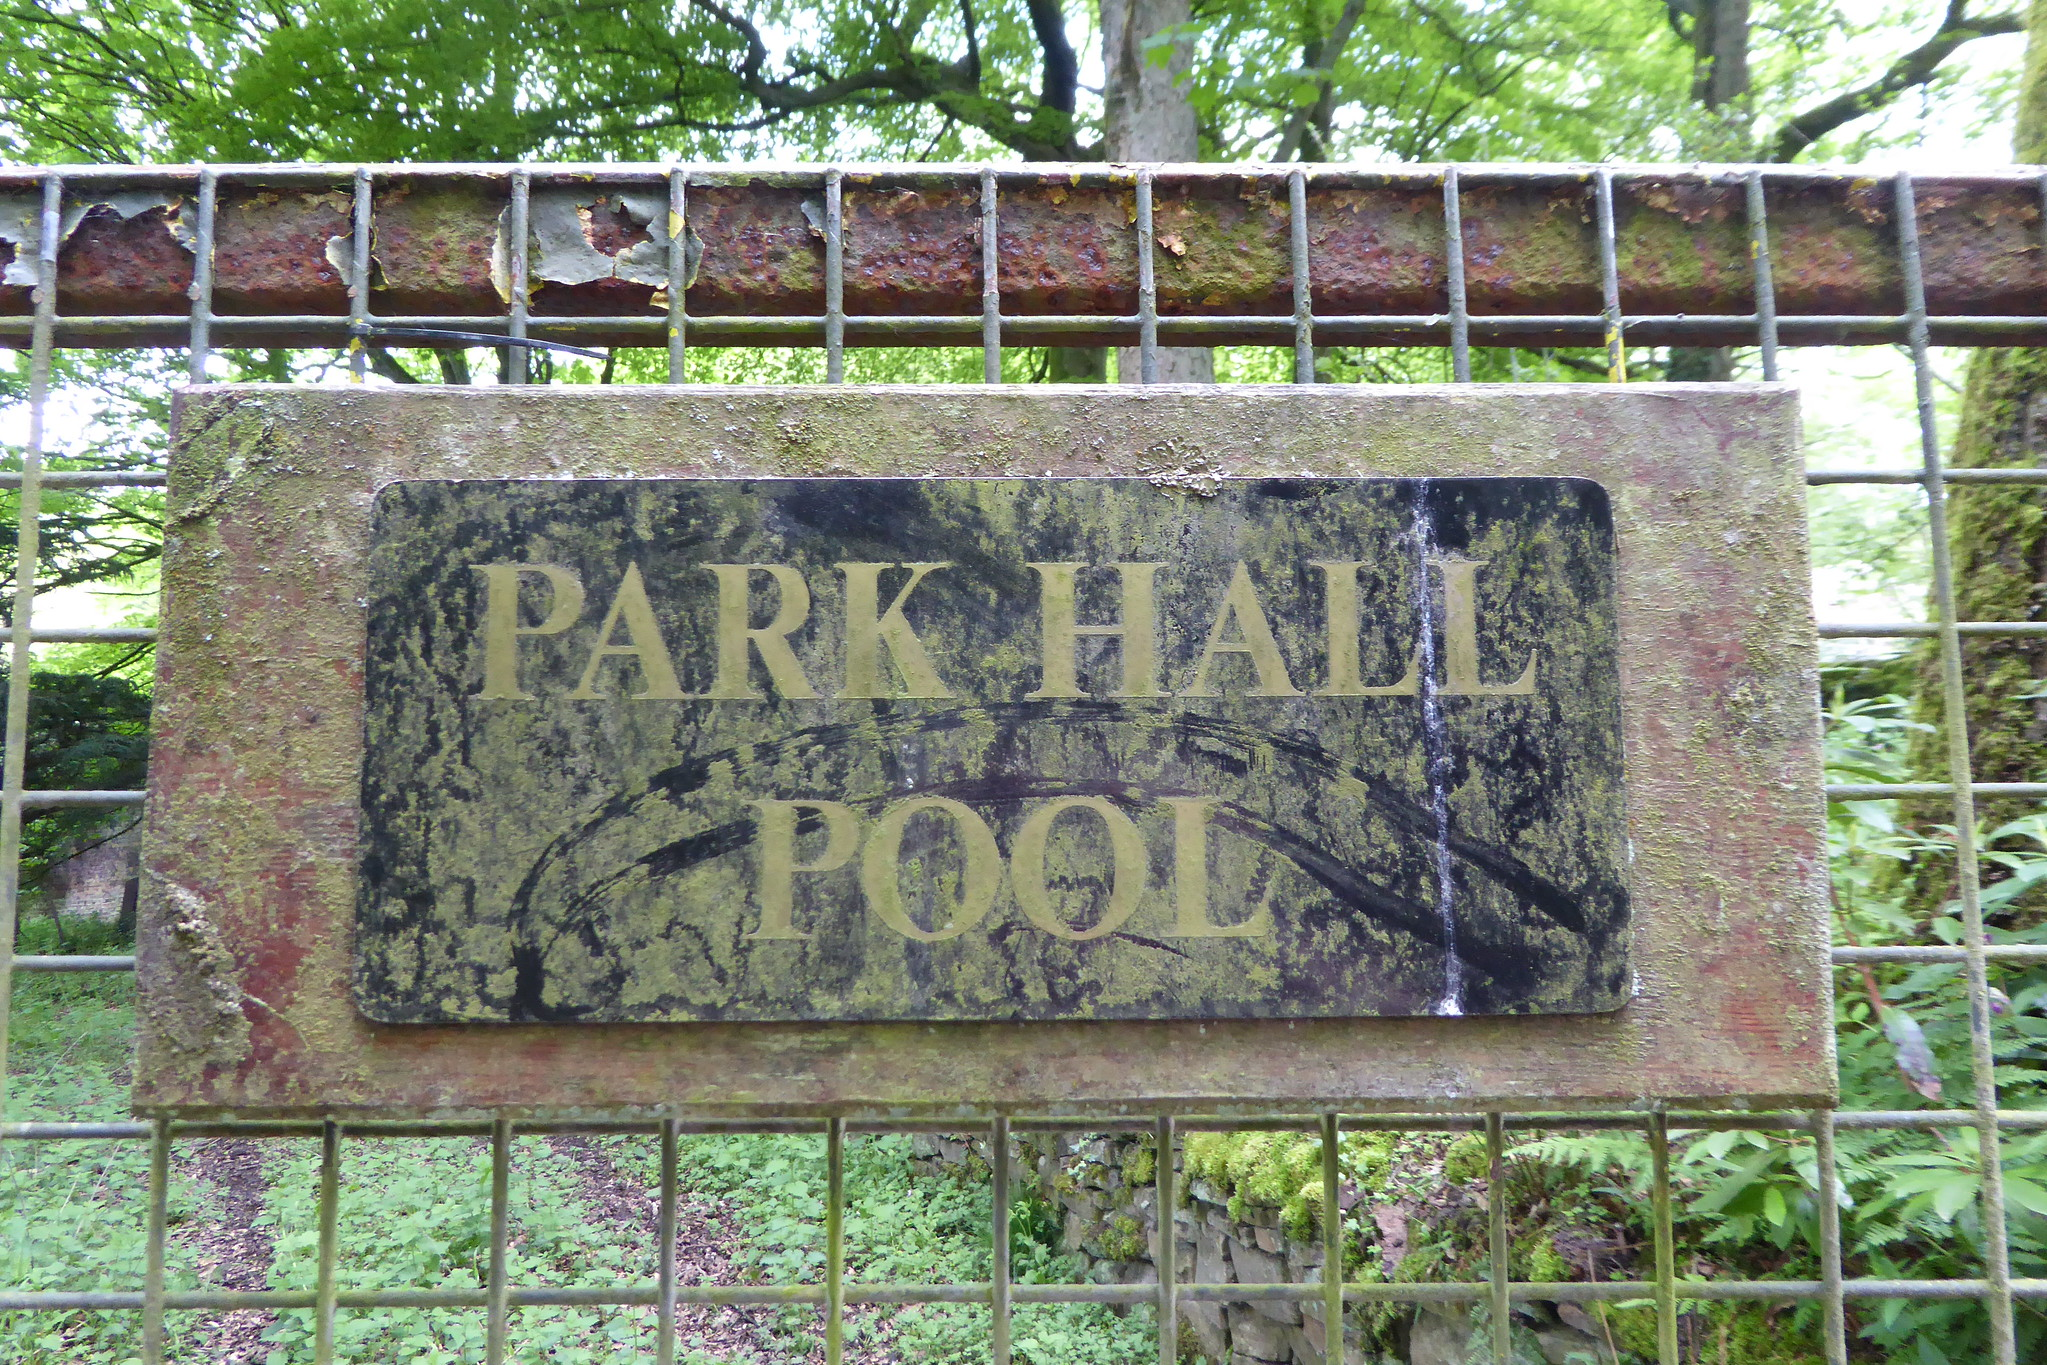 An old faded sign for Park Hall Pool